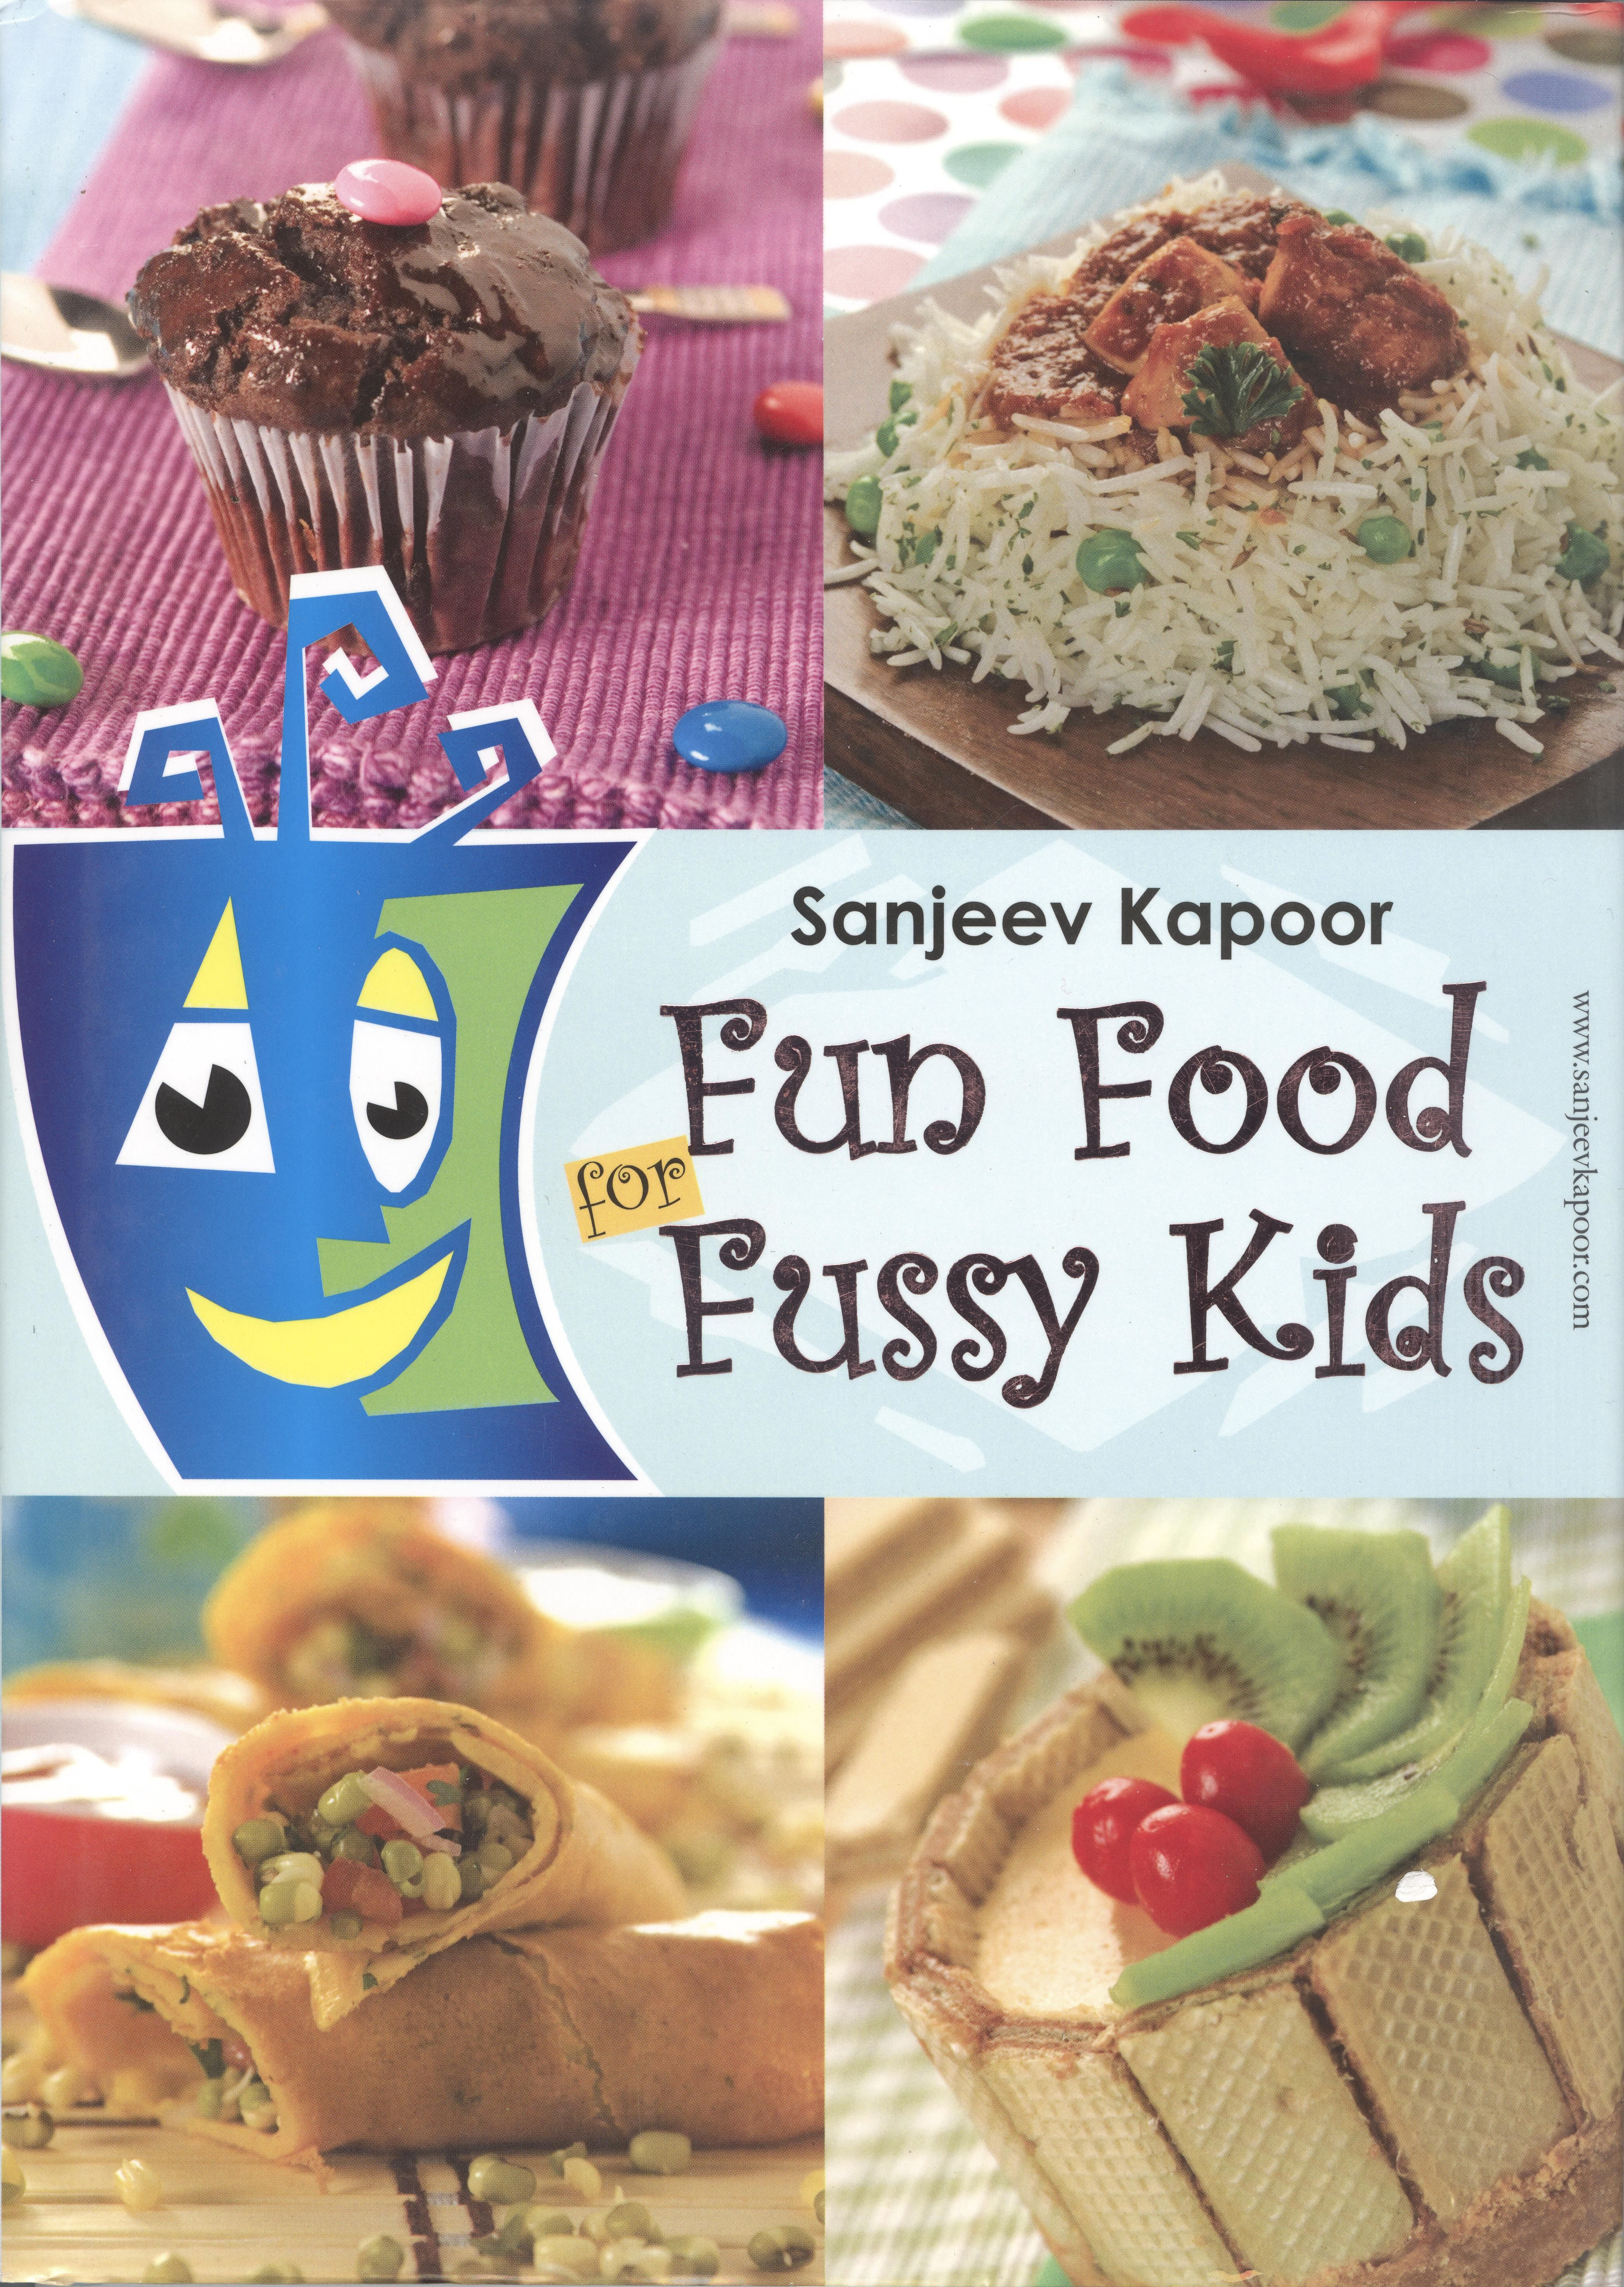 Fun food for fussy kids sanjeev kapoor welcome to my recipe fun food for fussy kids sanjeev kapoor forumfinder Images